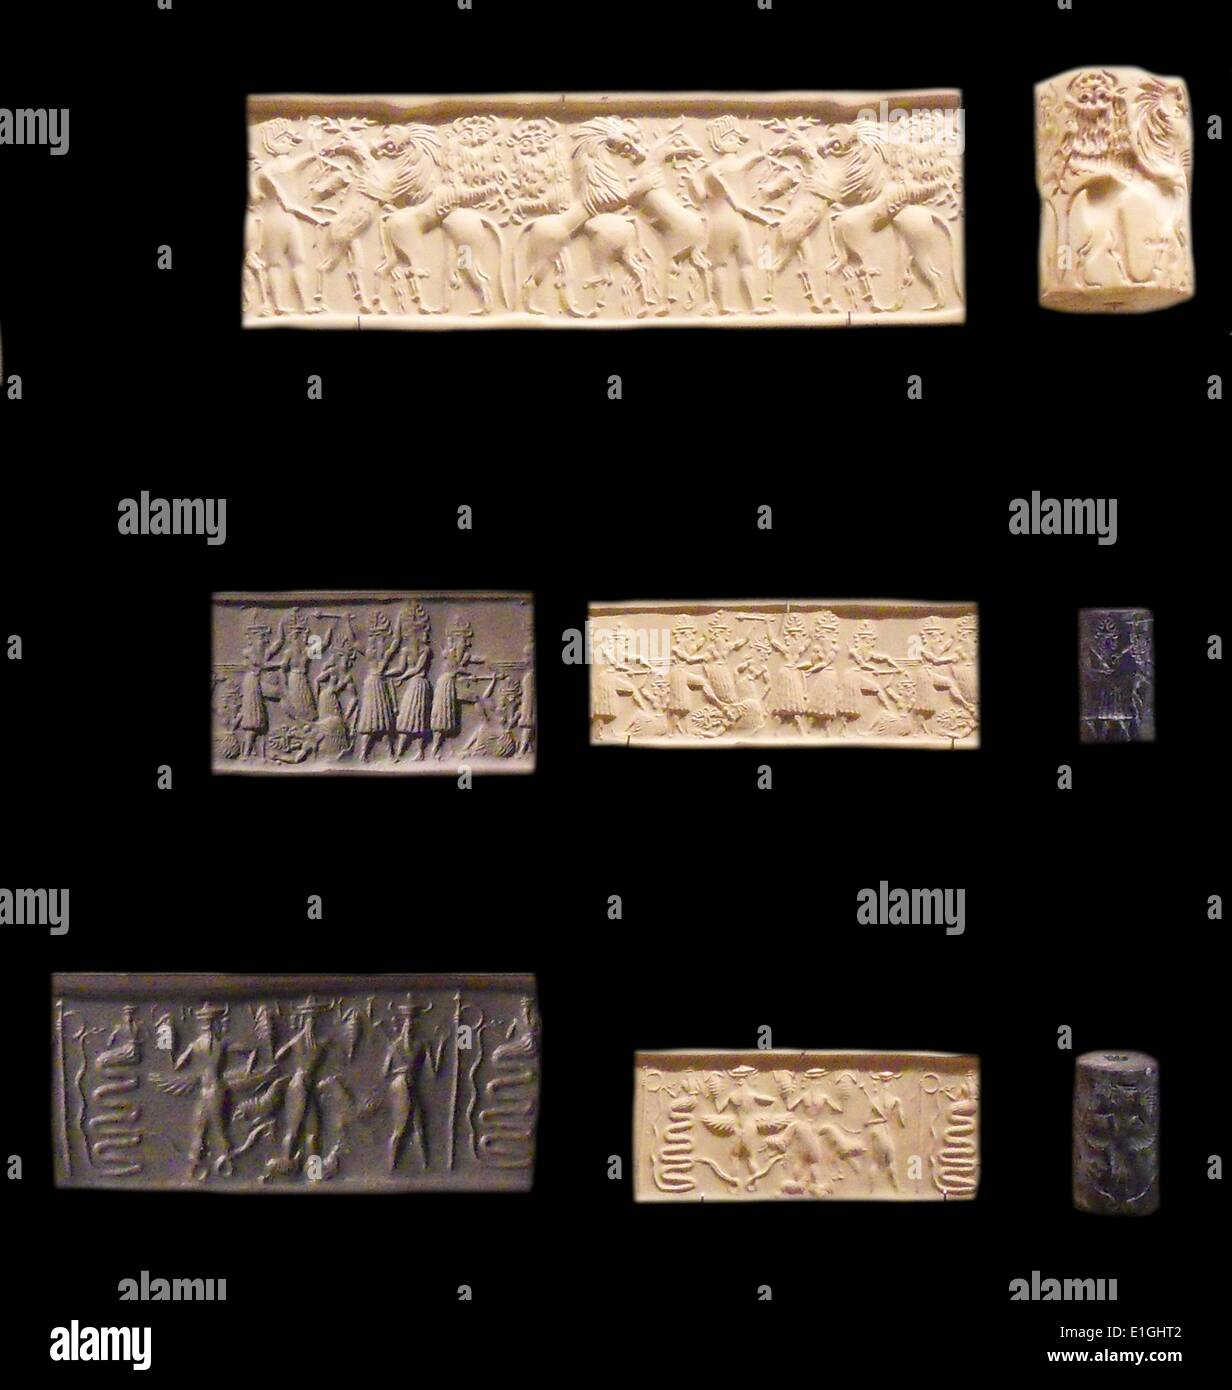 Cylinder Seals from Mesopotamia, Neo-Babylonian period circa 500 BC - Stock Image